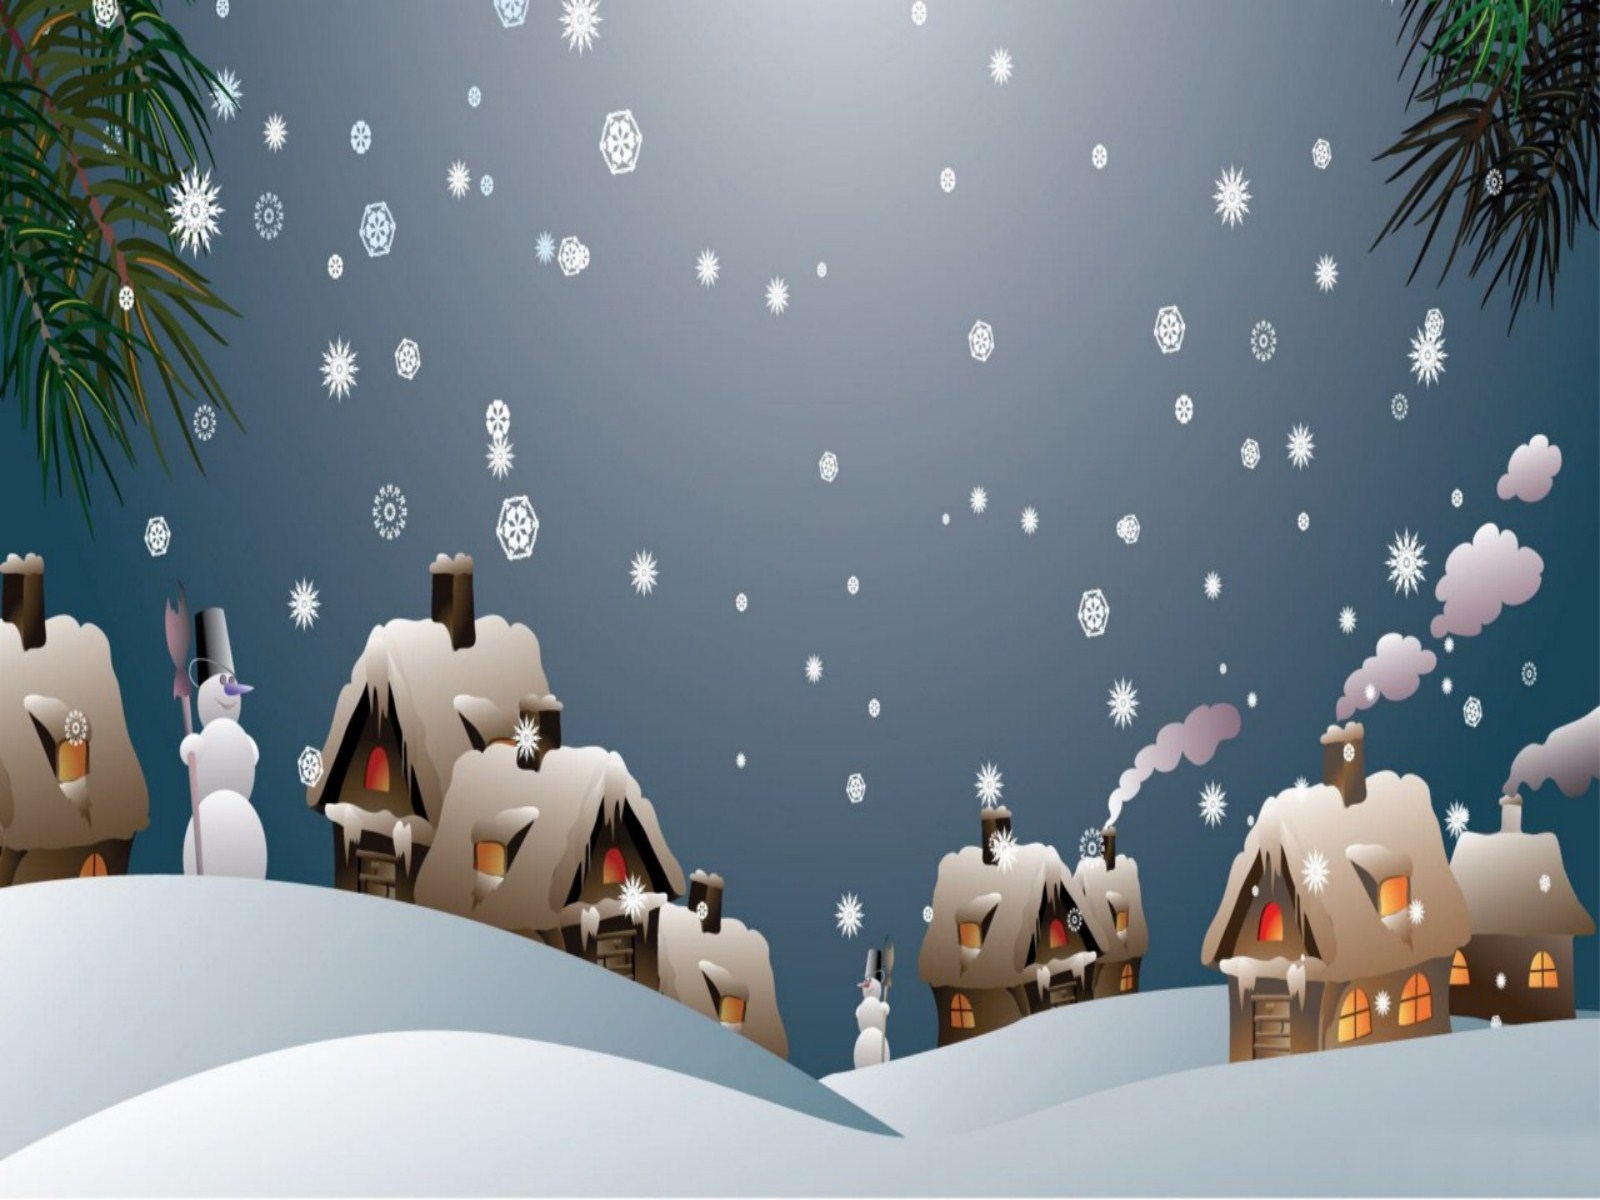 Animated Snow Desktop Wallpaper